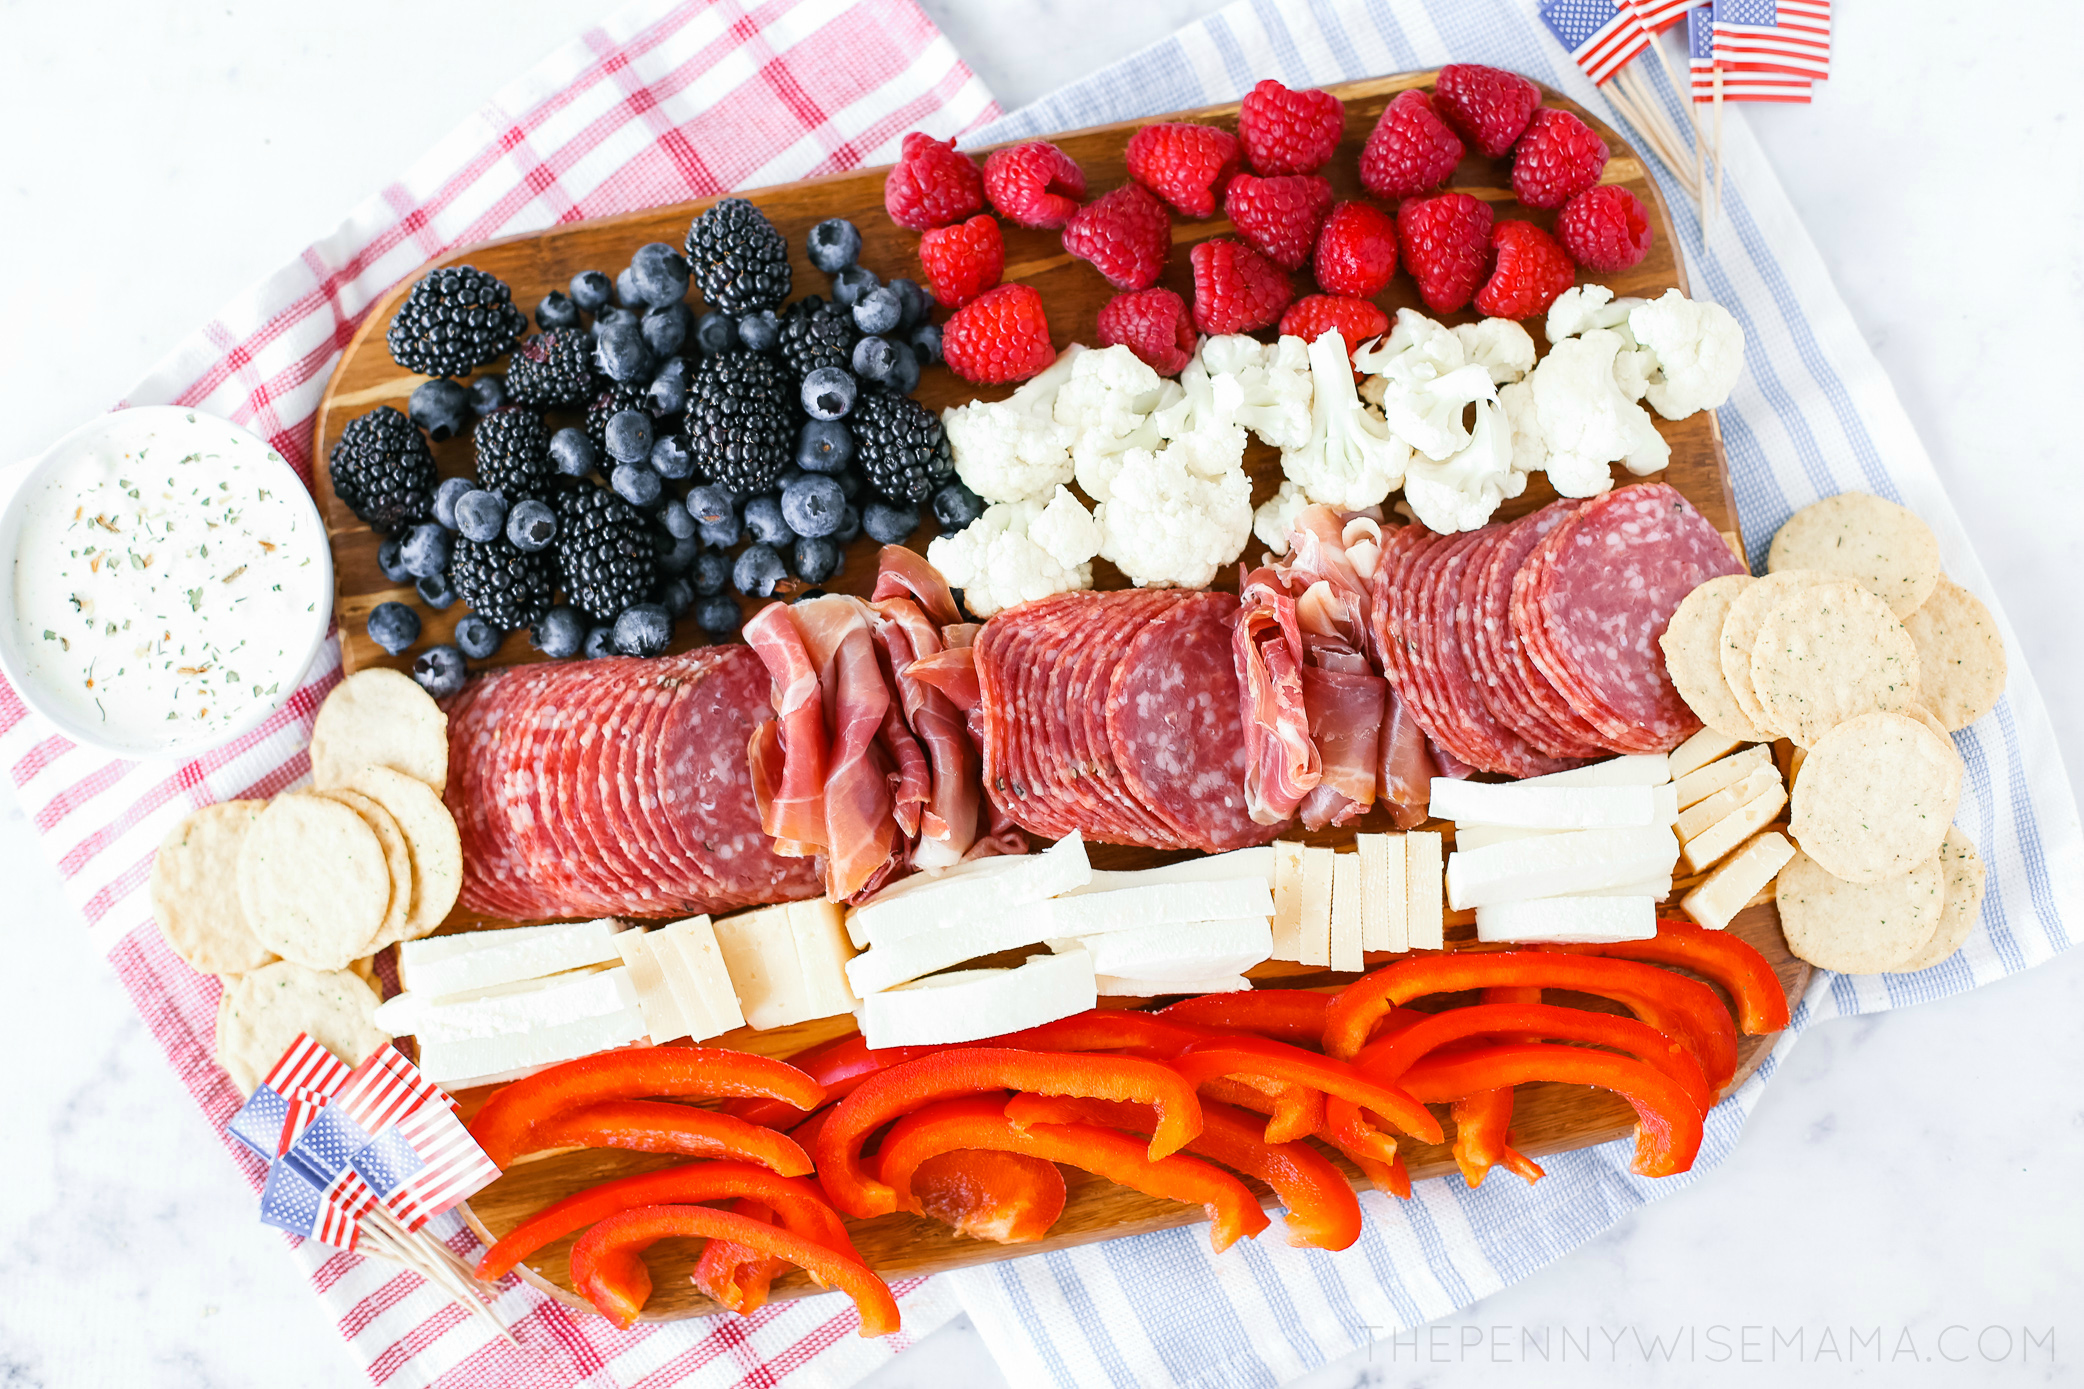 American Flag Appetizer Charcuterie Board | Patriotic Charcuterie Boards